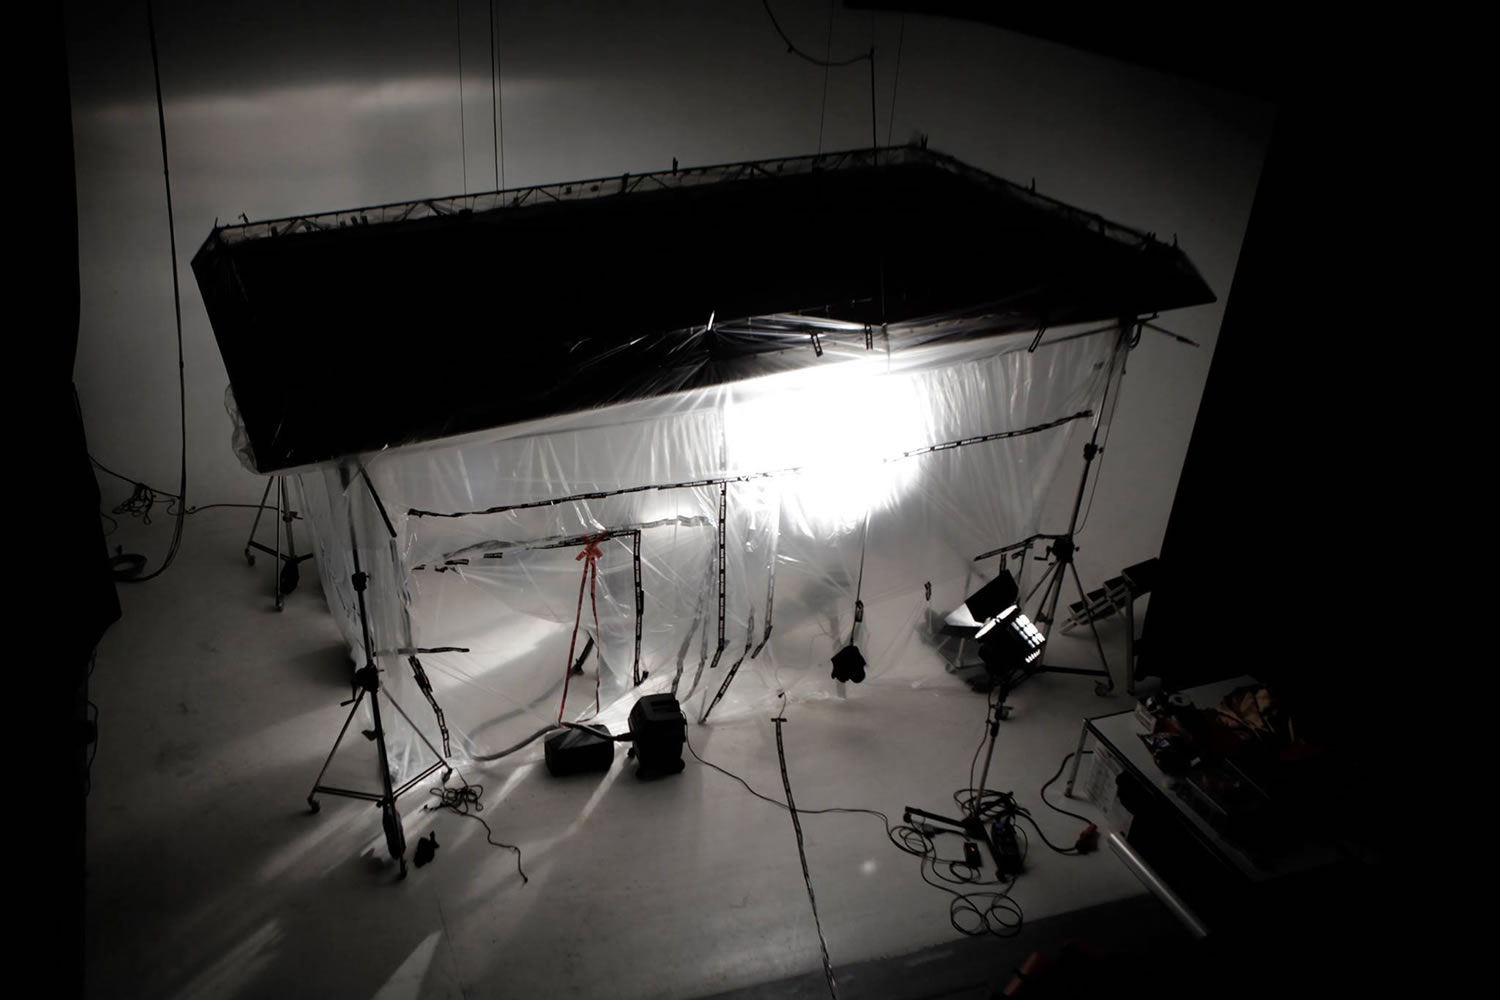 production setup for susi sie